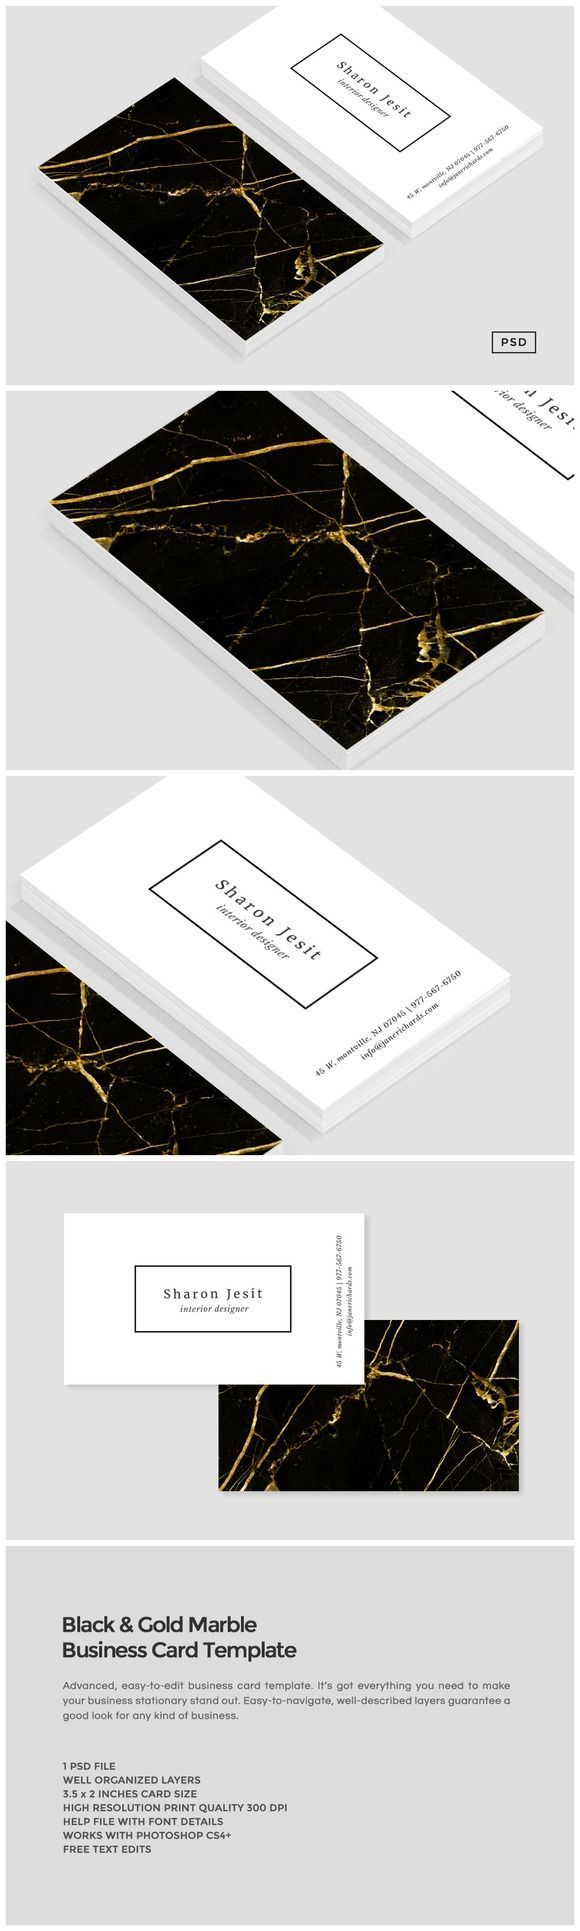 189 best creative business cards images on pinterest creative 189 best creative business cards images on pinterest creative business cards business tips and business marketing reheart Gallery